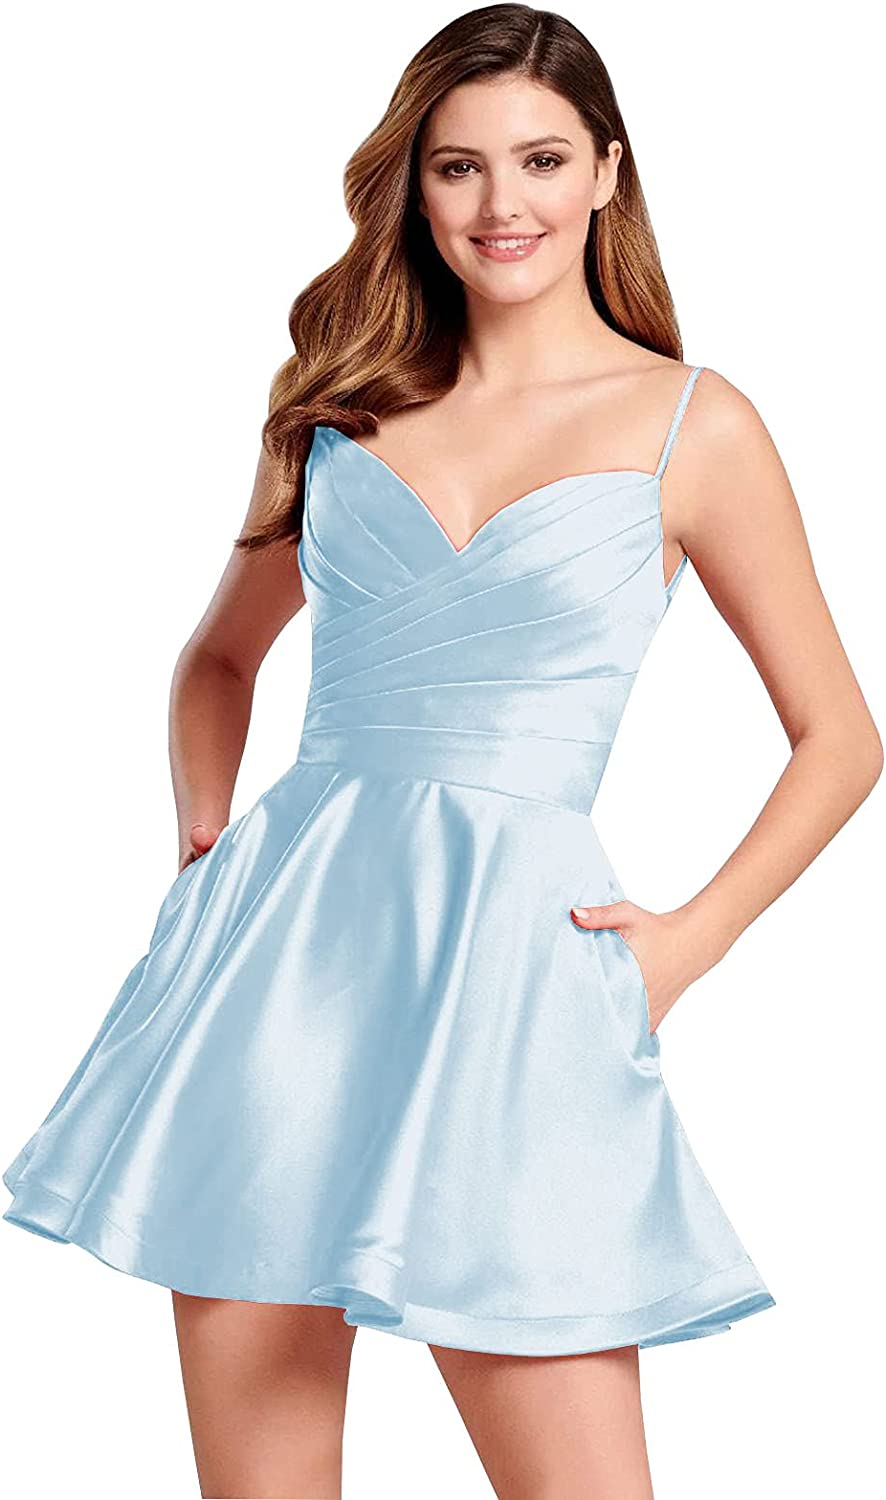 BONOYUER Spaghetti Strap Short Homecoming Dresses for Teens A Line Satin Open Back Cocktail Formal Party Gown with Pockets